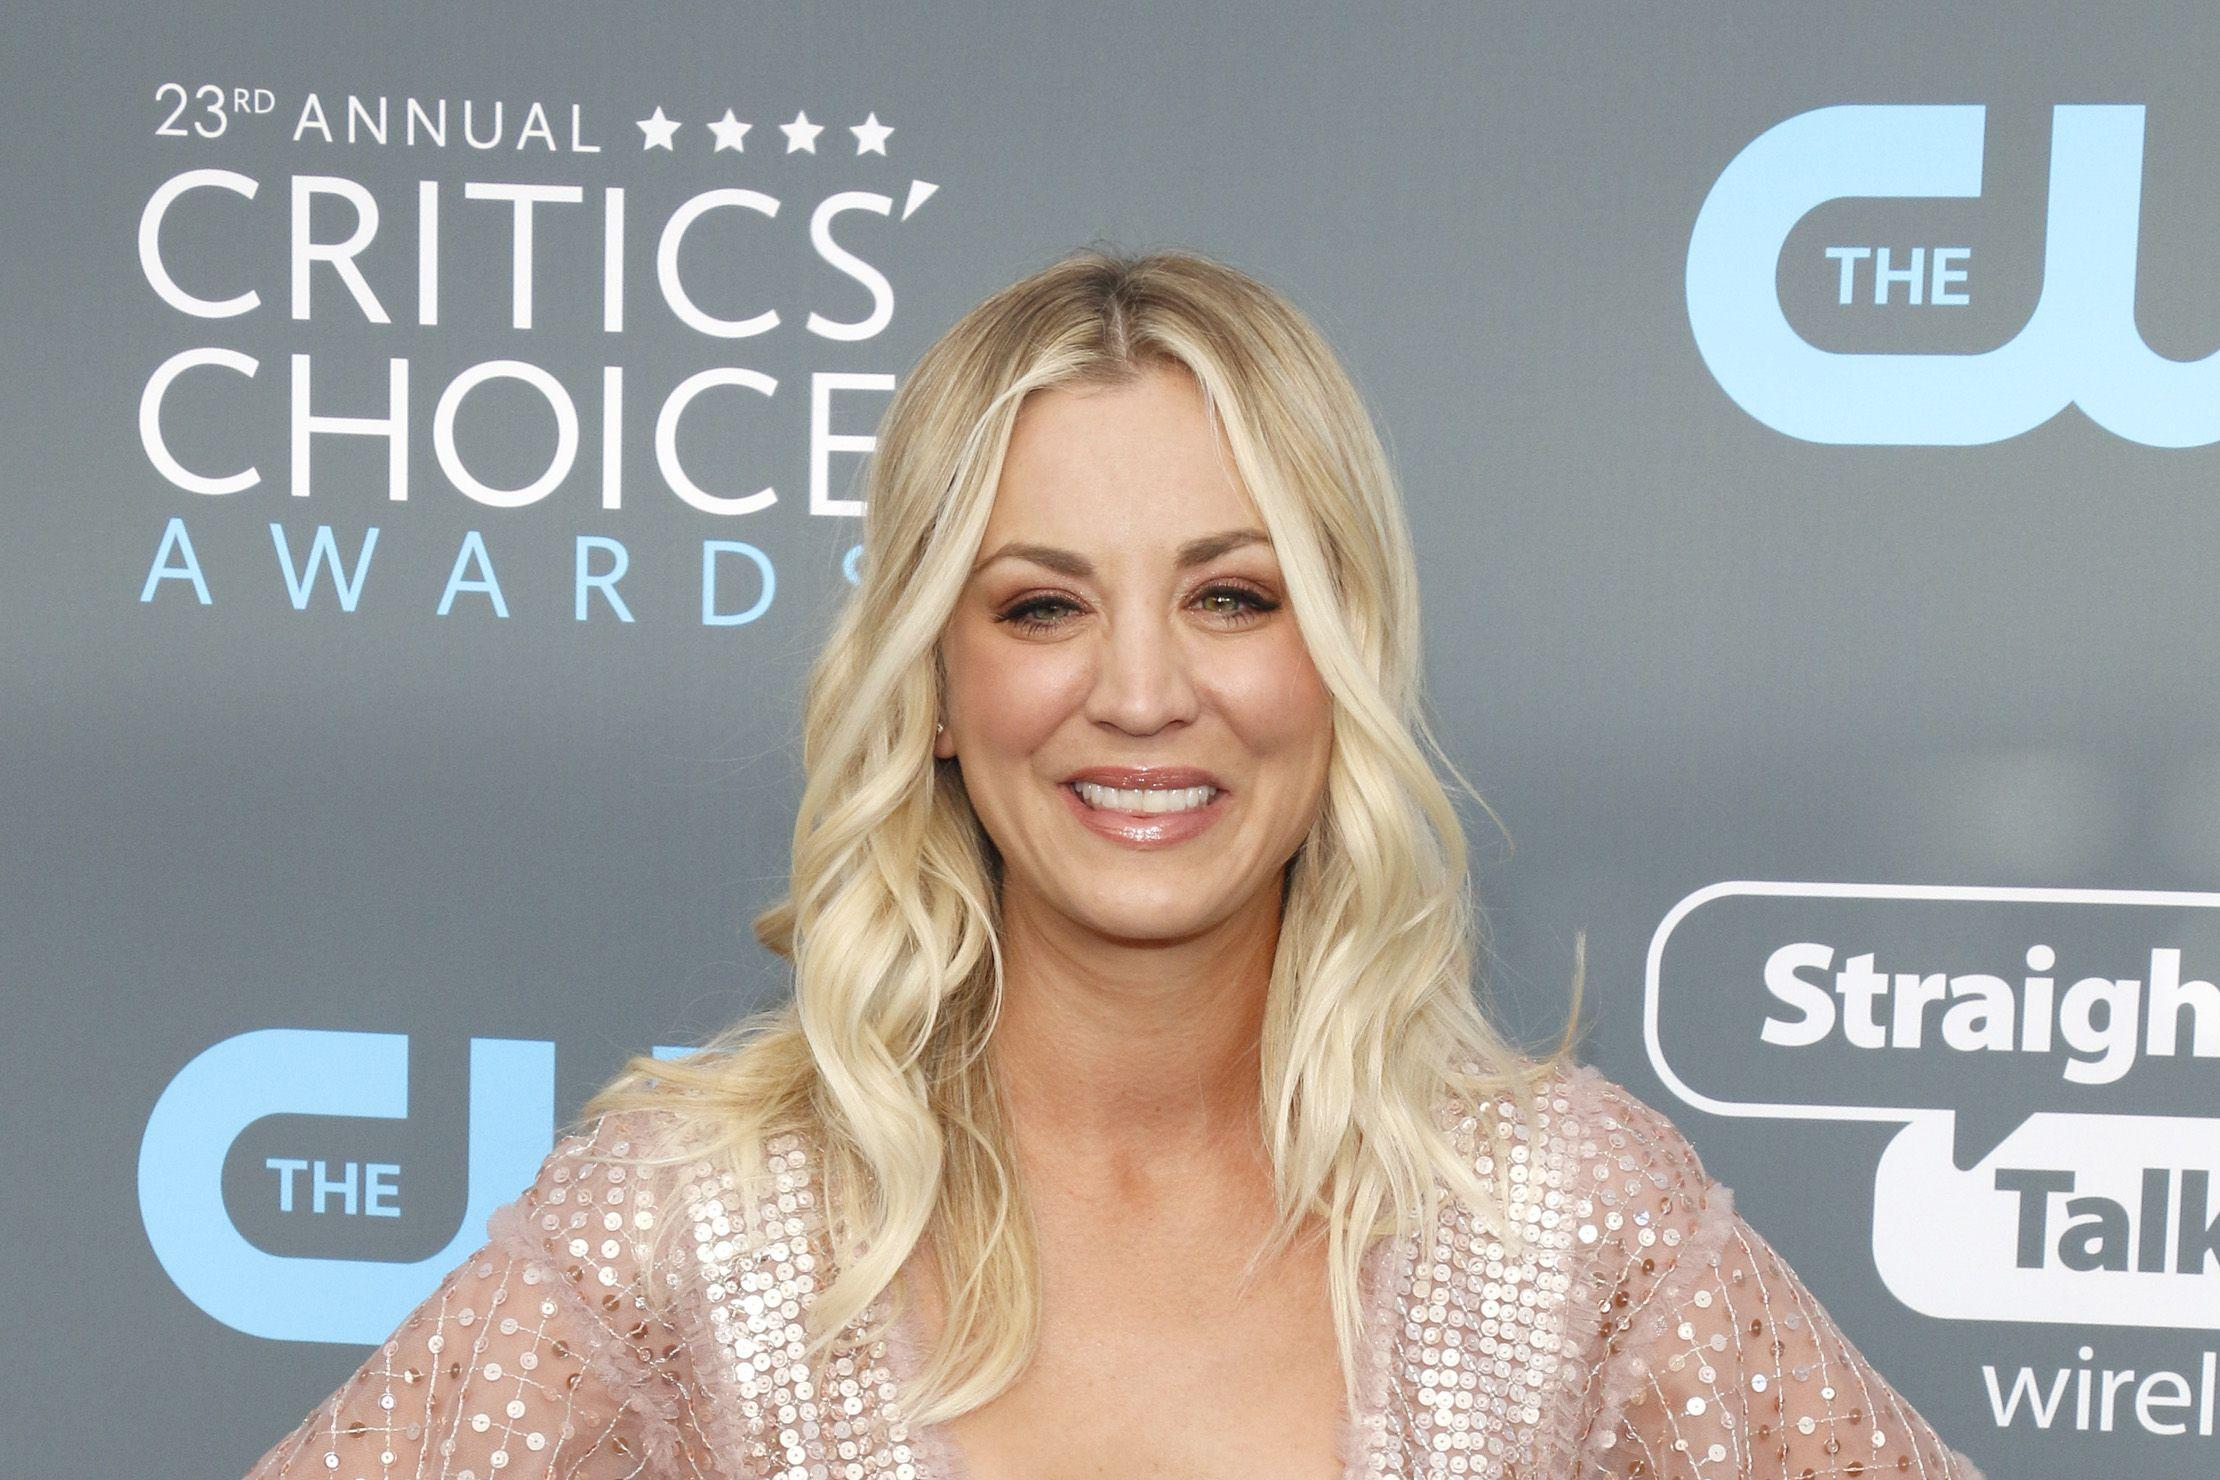 Kaley Cuoco's Drastic Transformation: From Big Bang To Thriller